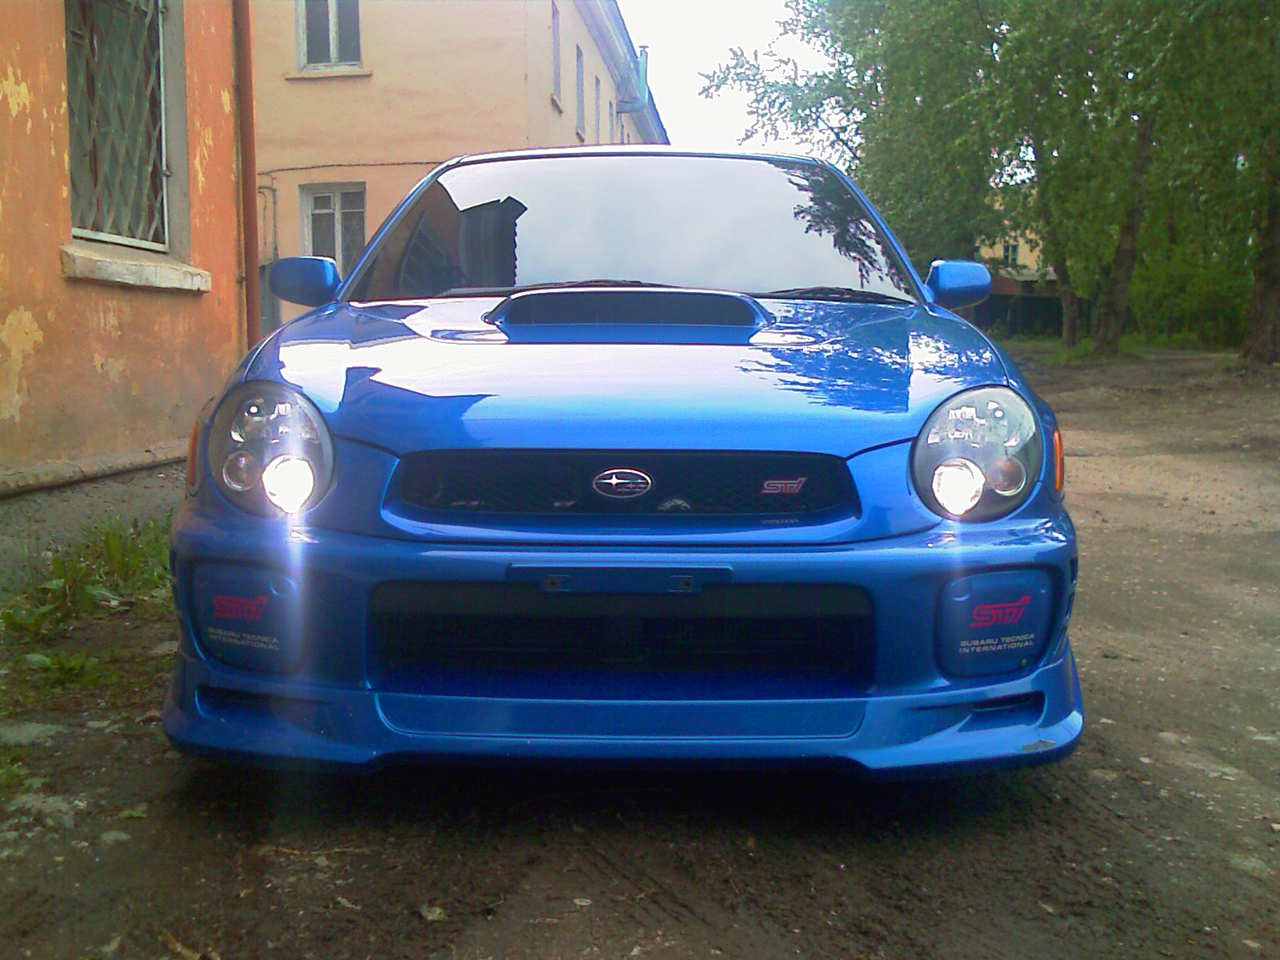 2002 subaru impreza wrx sti photos gasoline manual for sale. Black Bedroom Furniture Sets. Home Design Ideas